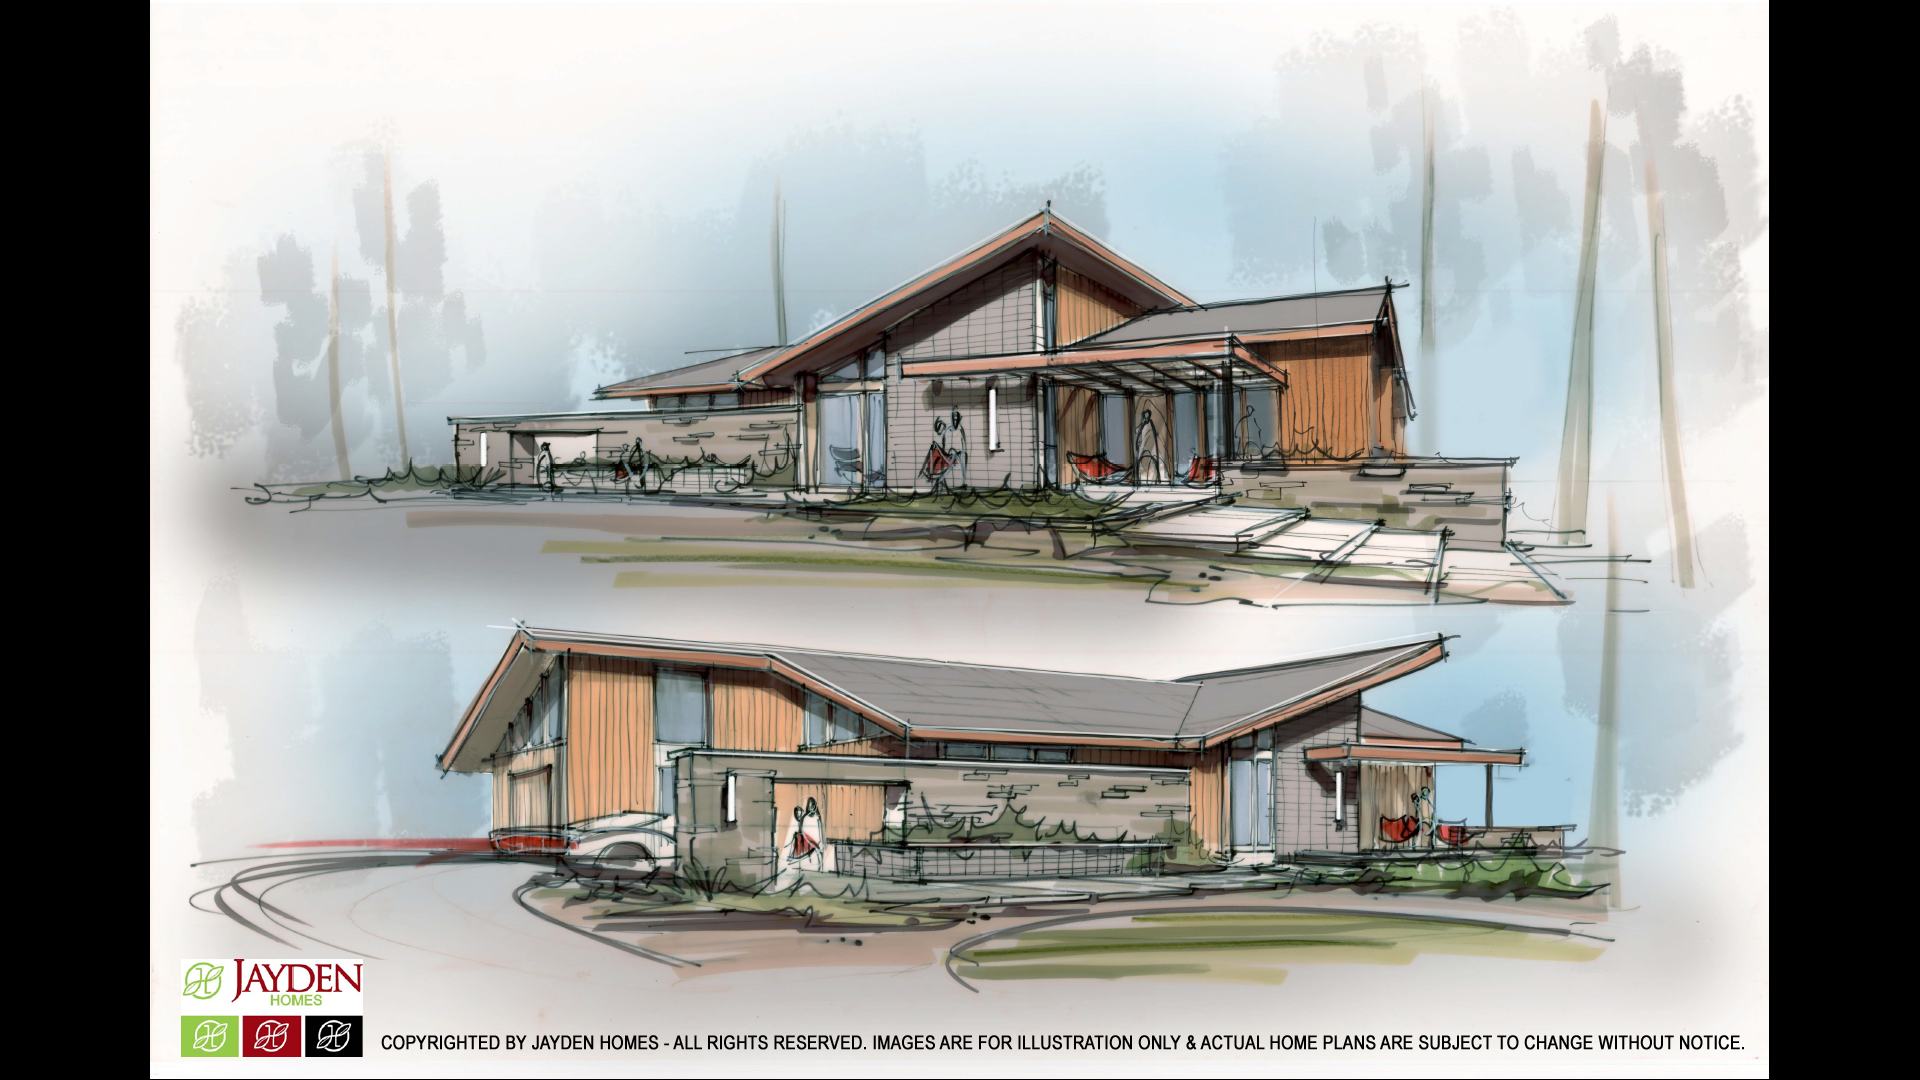 New grandview mid century concept design jayden homes for New concept homes